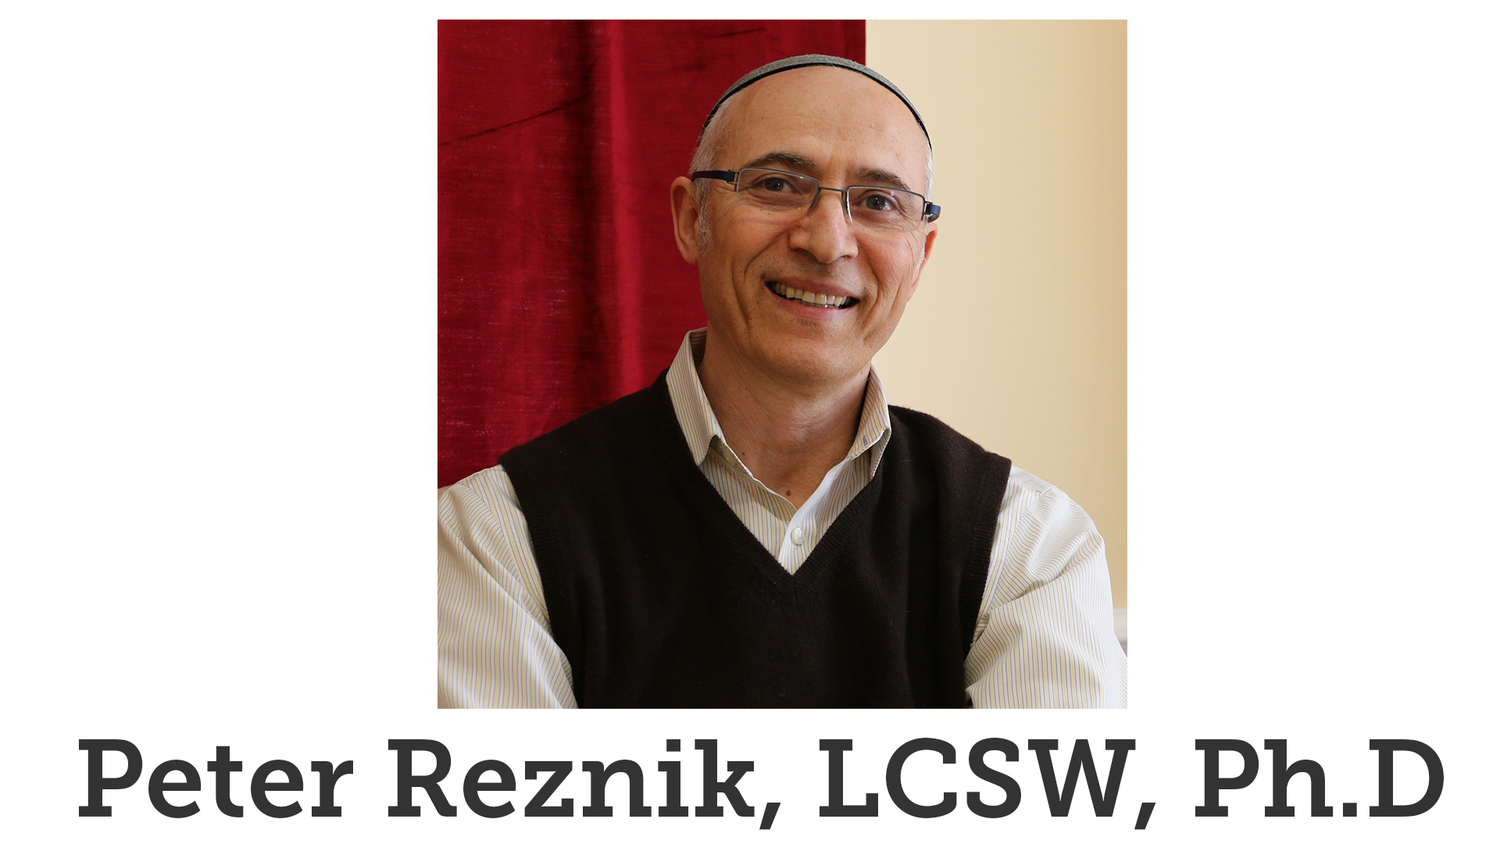 Peter Reznik, LCSW, Ph.D